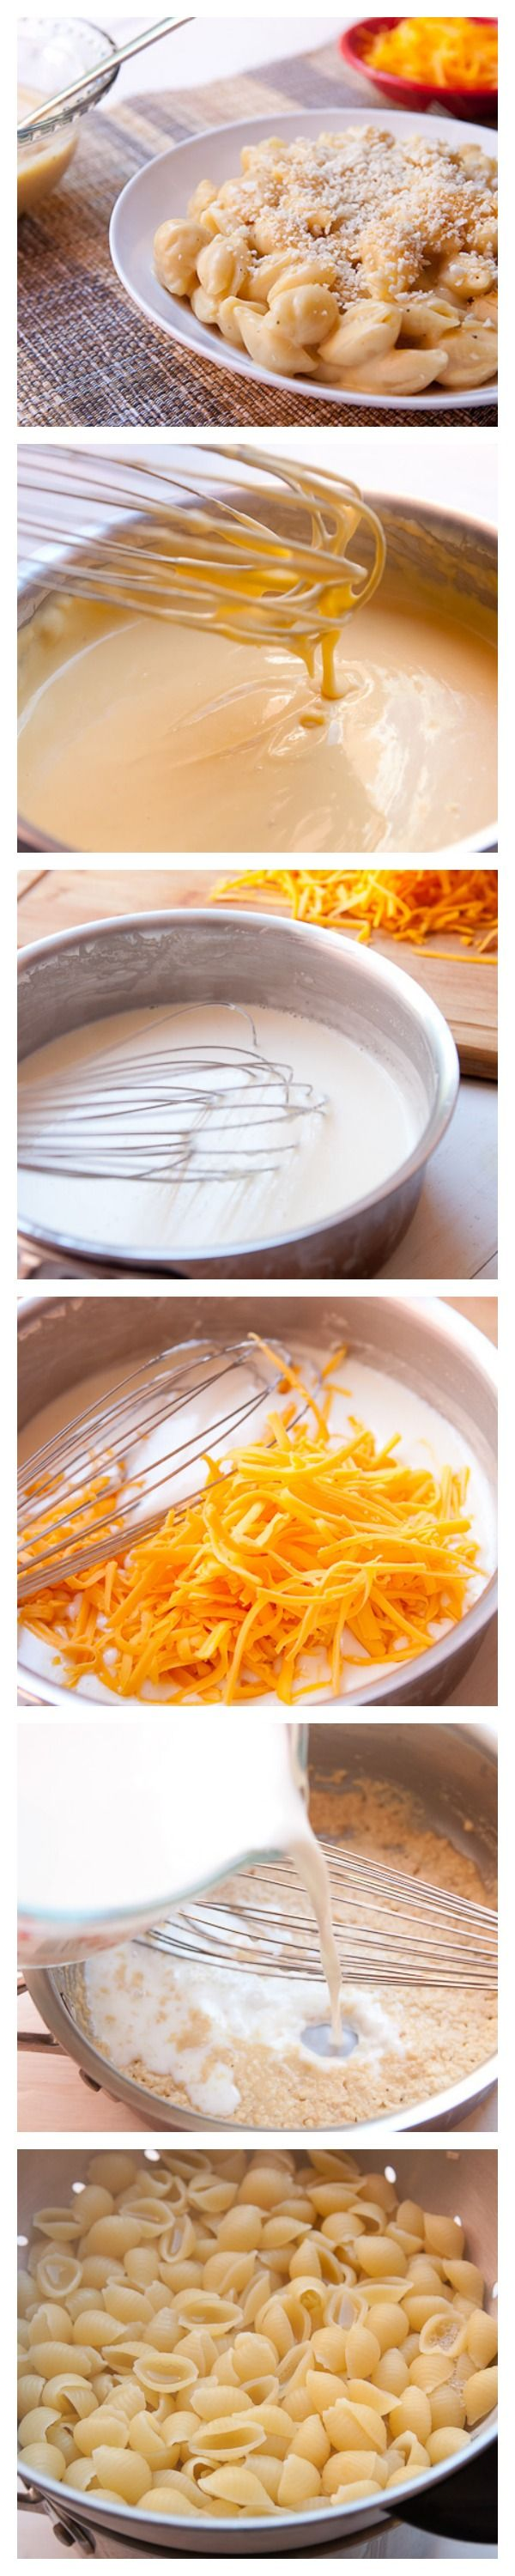 How To Make Cheddar Cheese Sauce